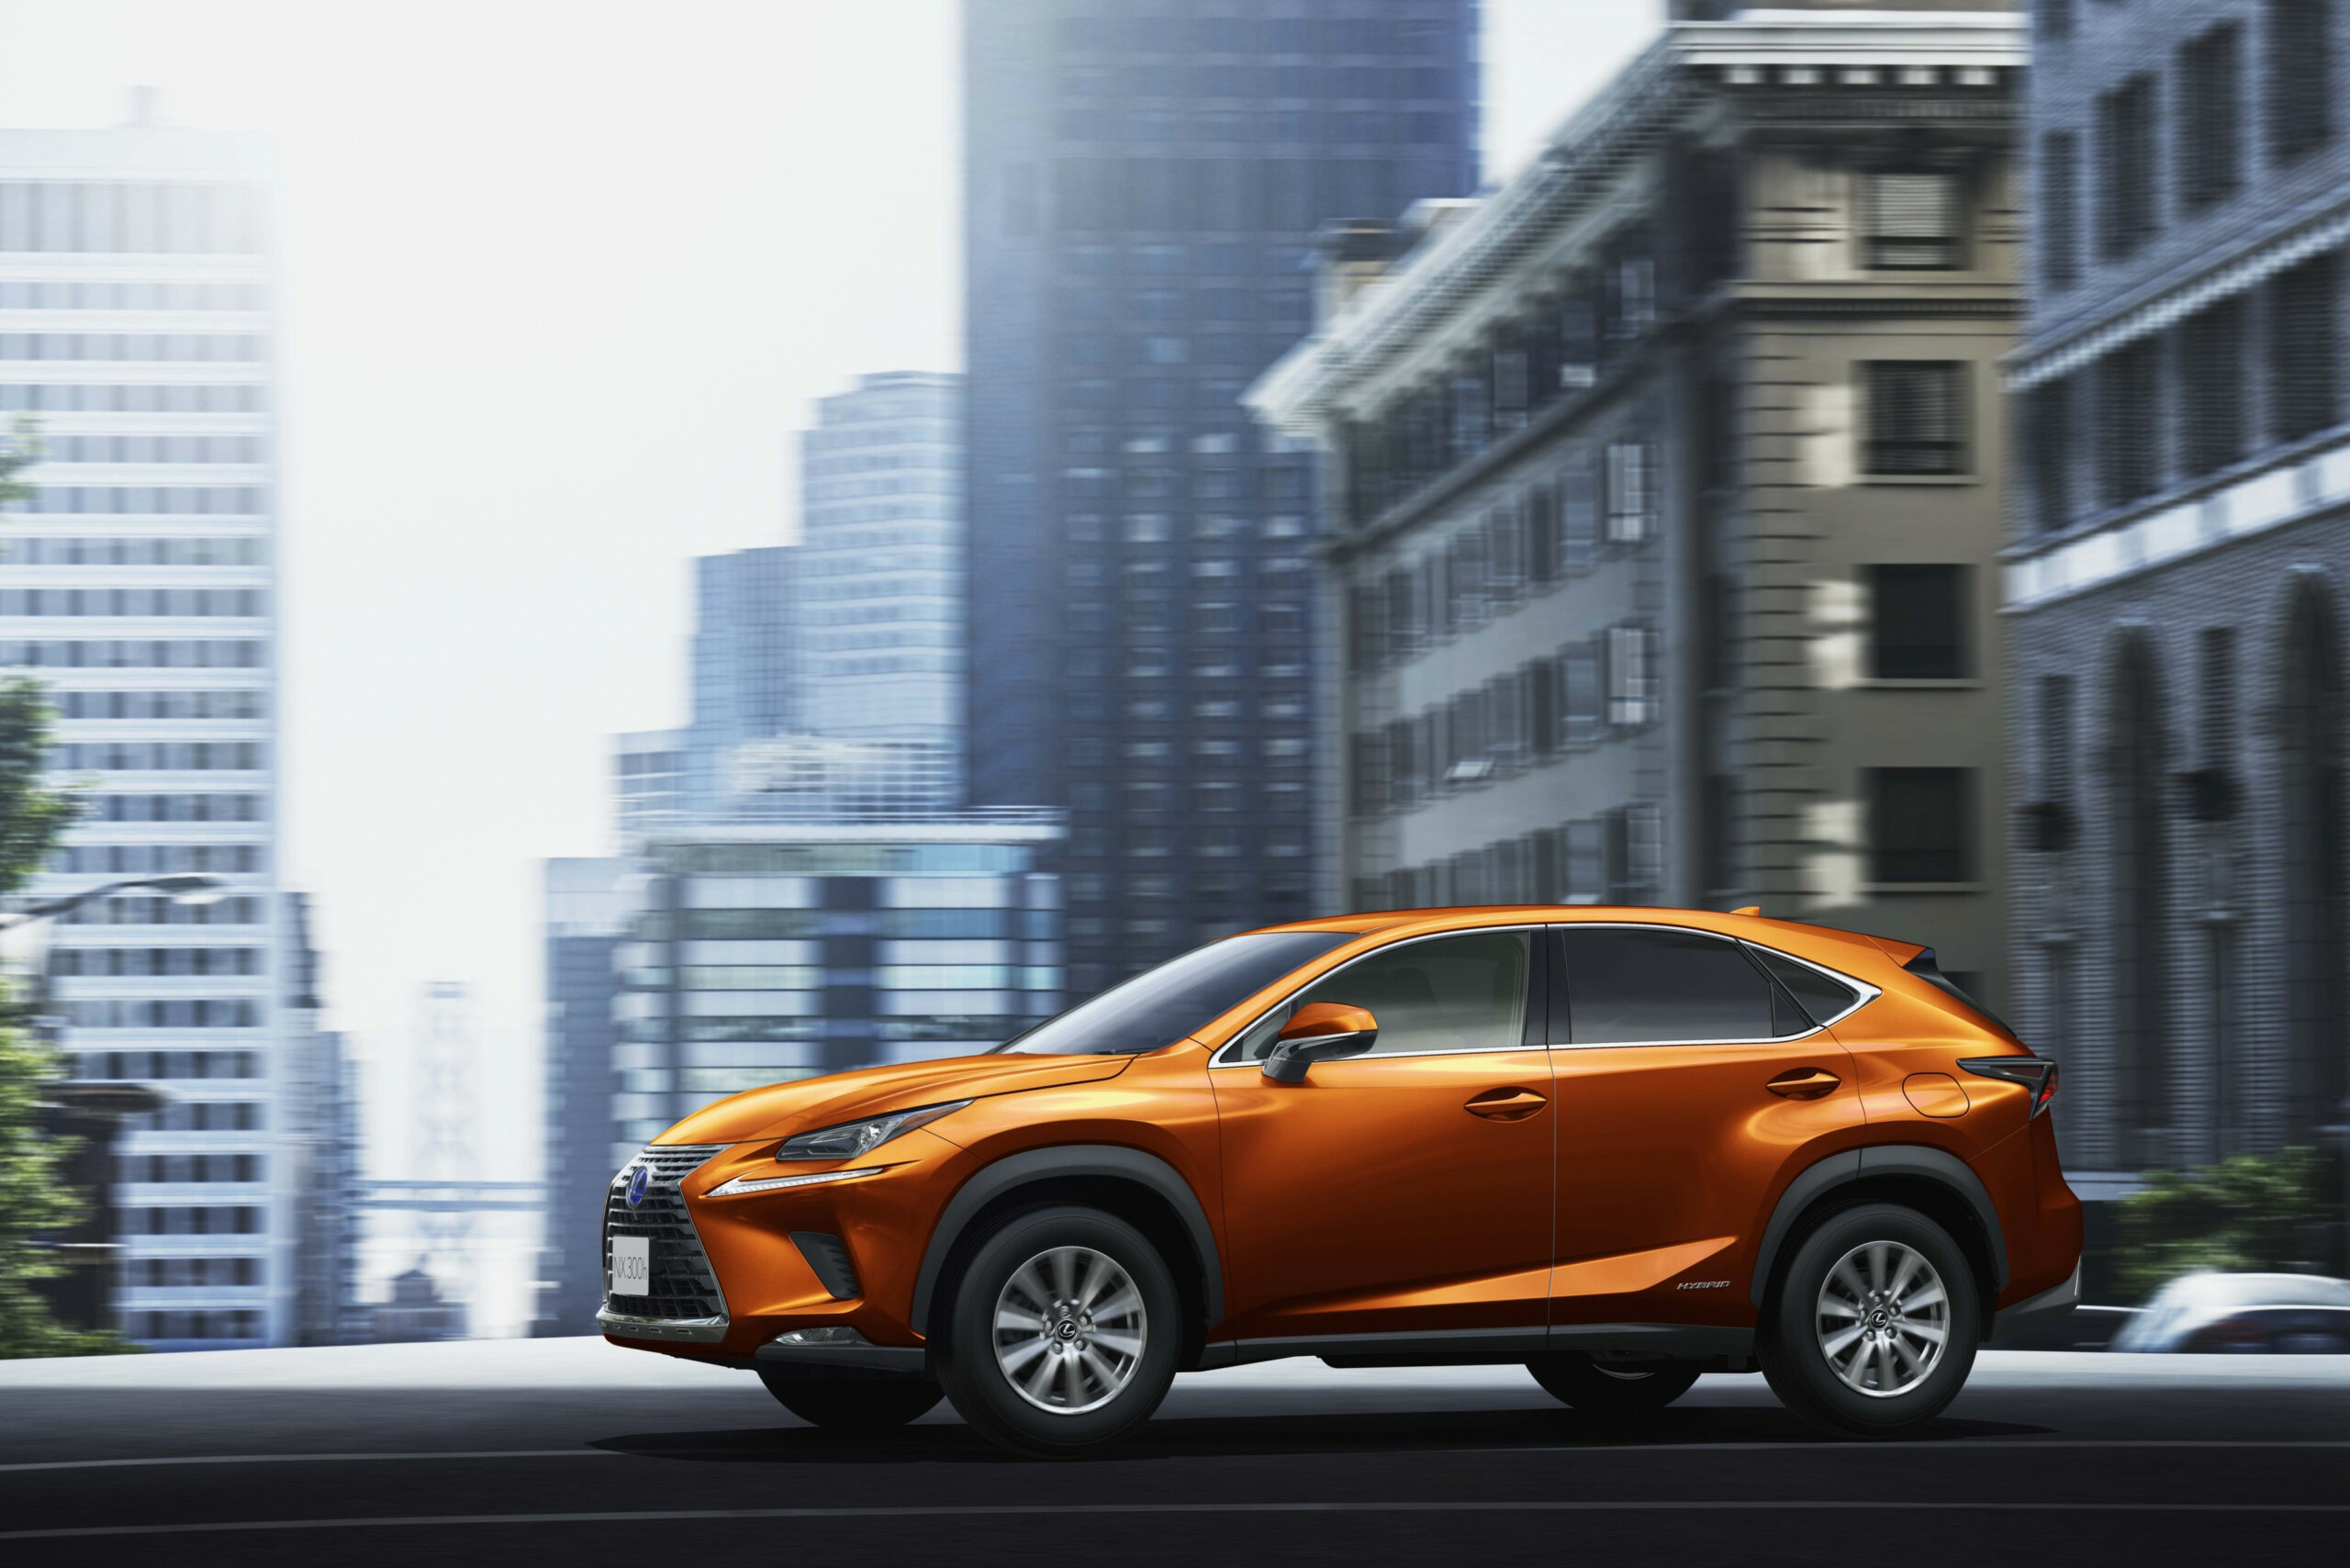 Lexus Japan Offers 7 NX Crossover in Cadmium Orange | Lexus ..